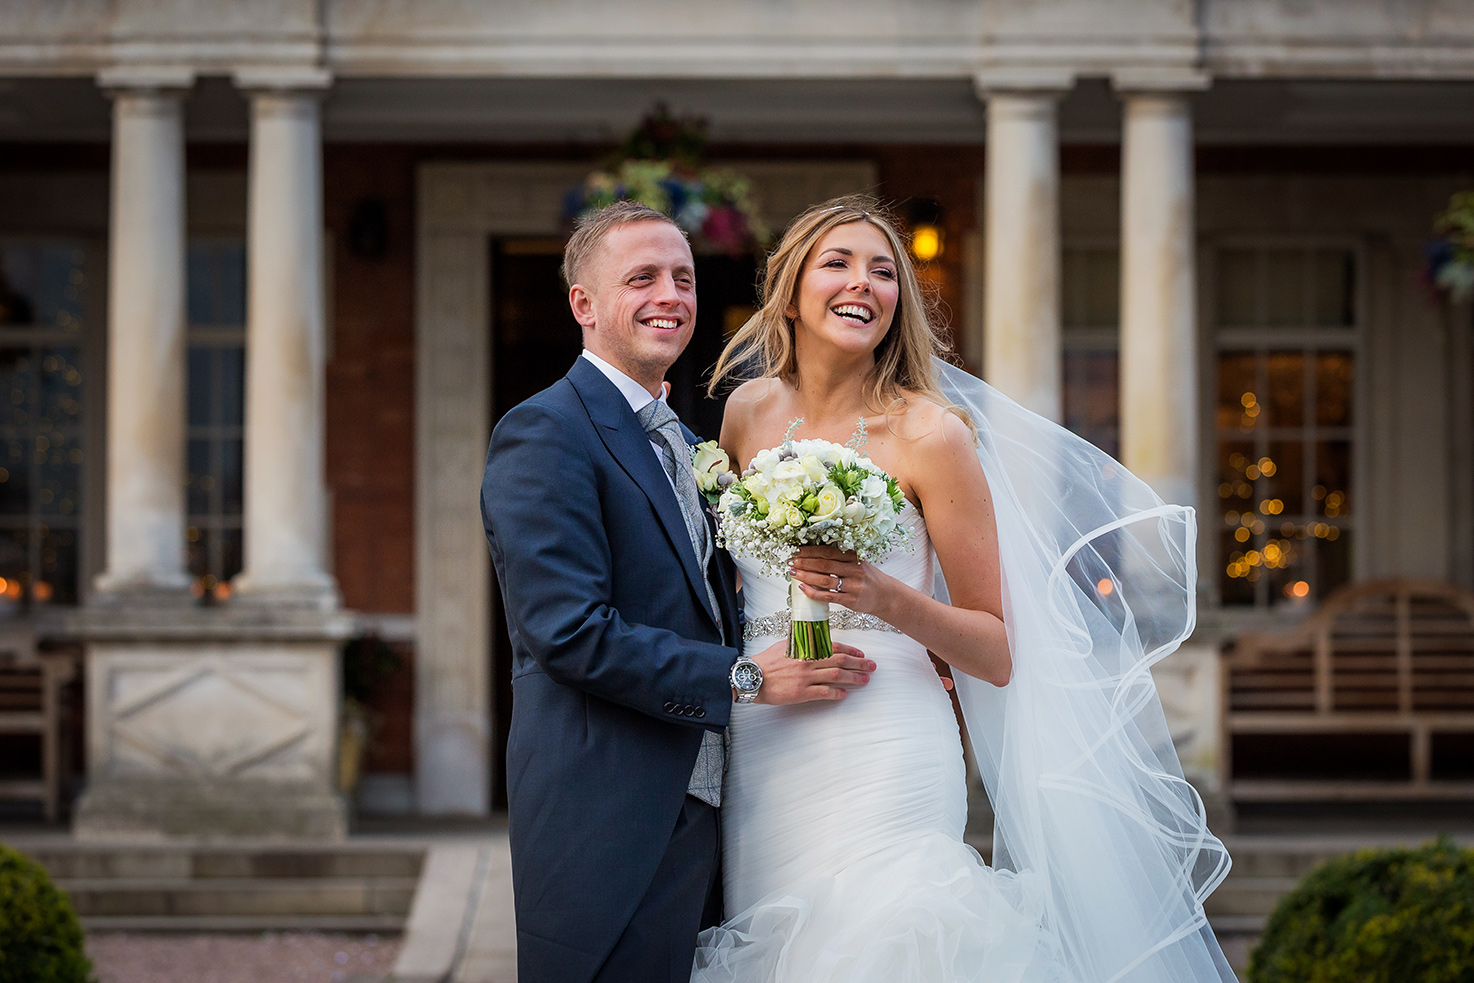 The bride and groom at Eaves Hall